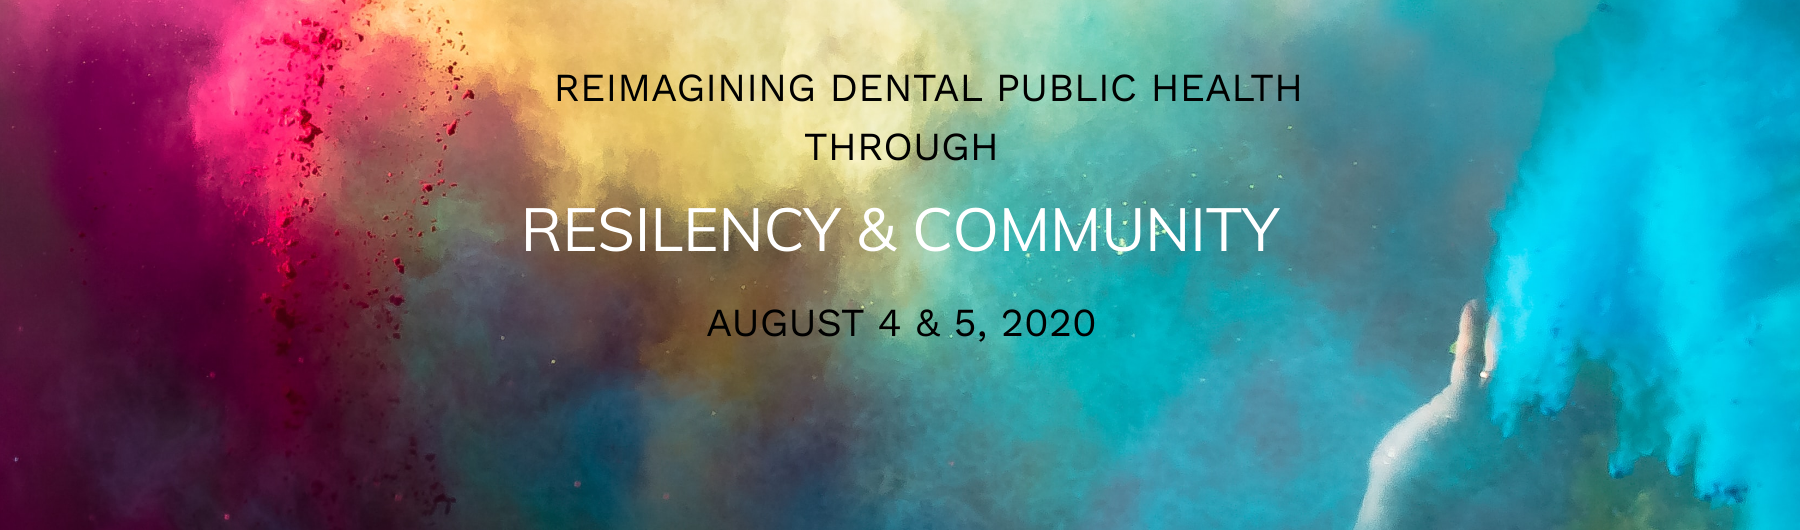 Reimagining Dental Public Health Through Resiliency and Community